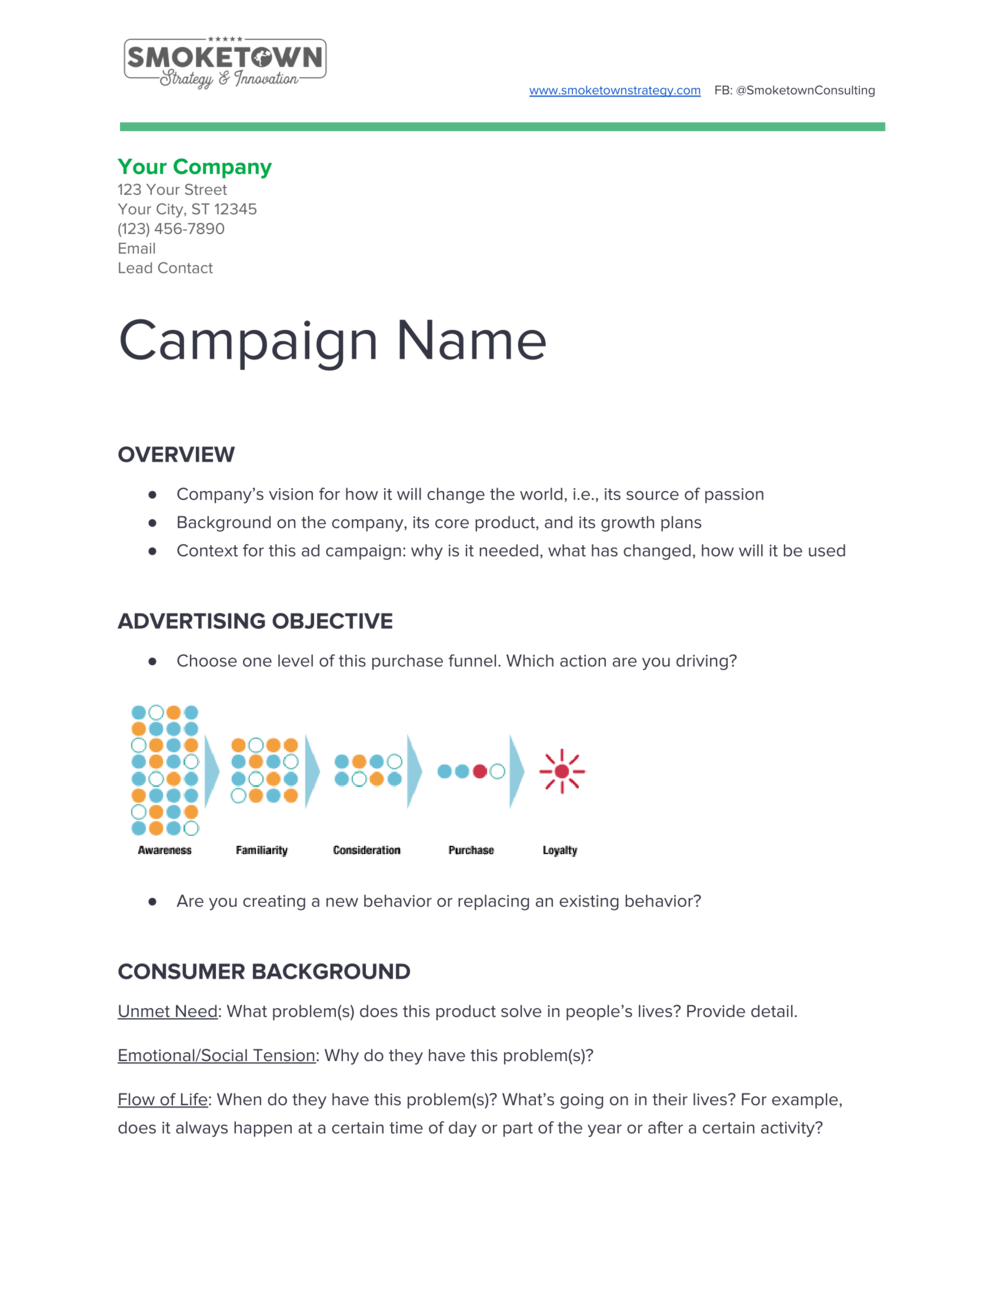 Creative Brief for Advertising-1.png